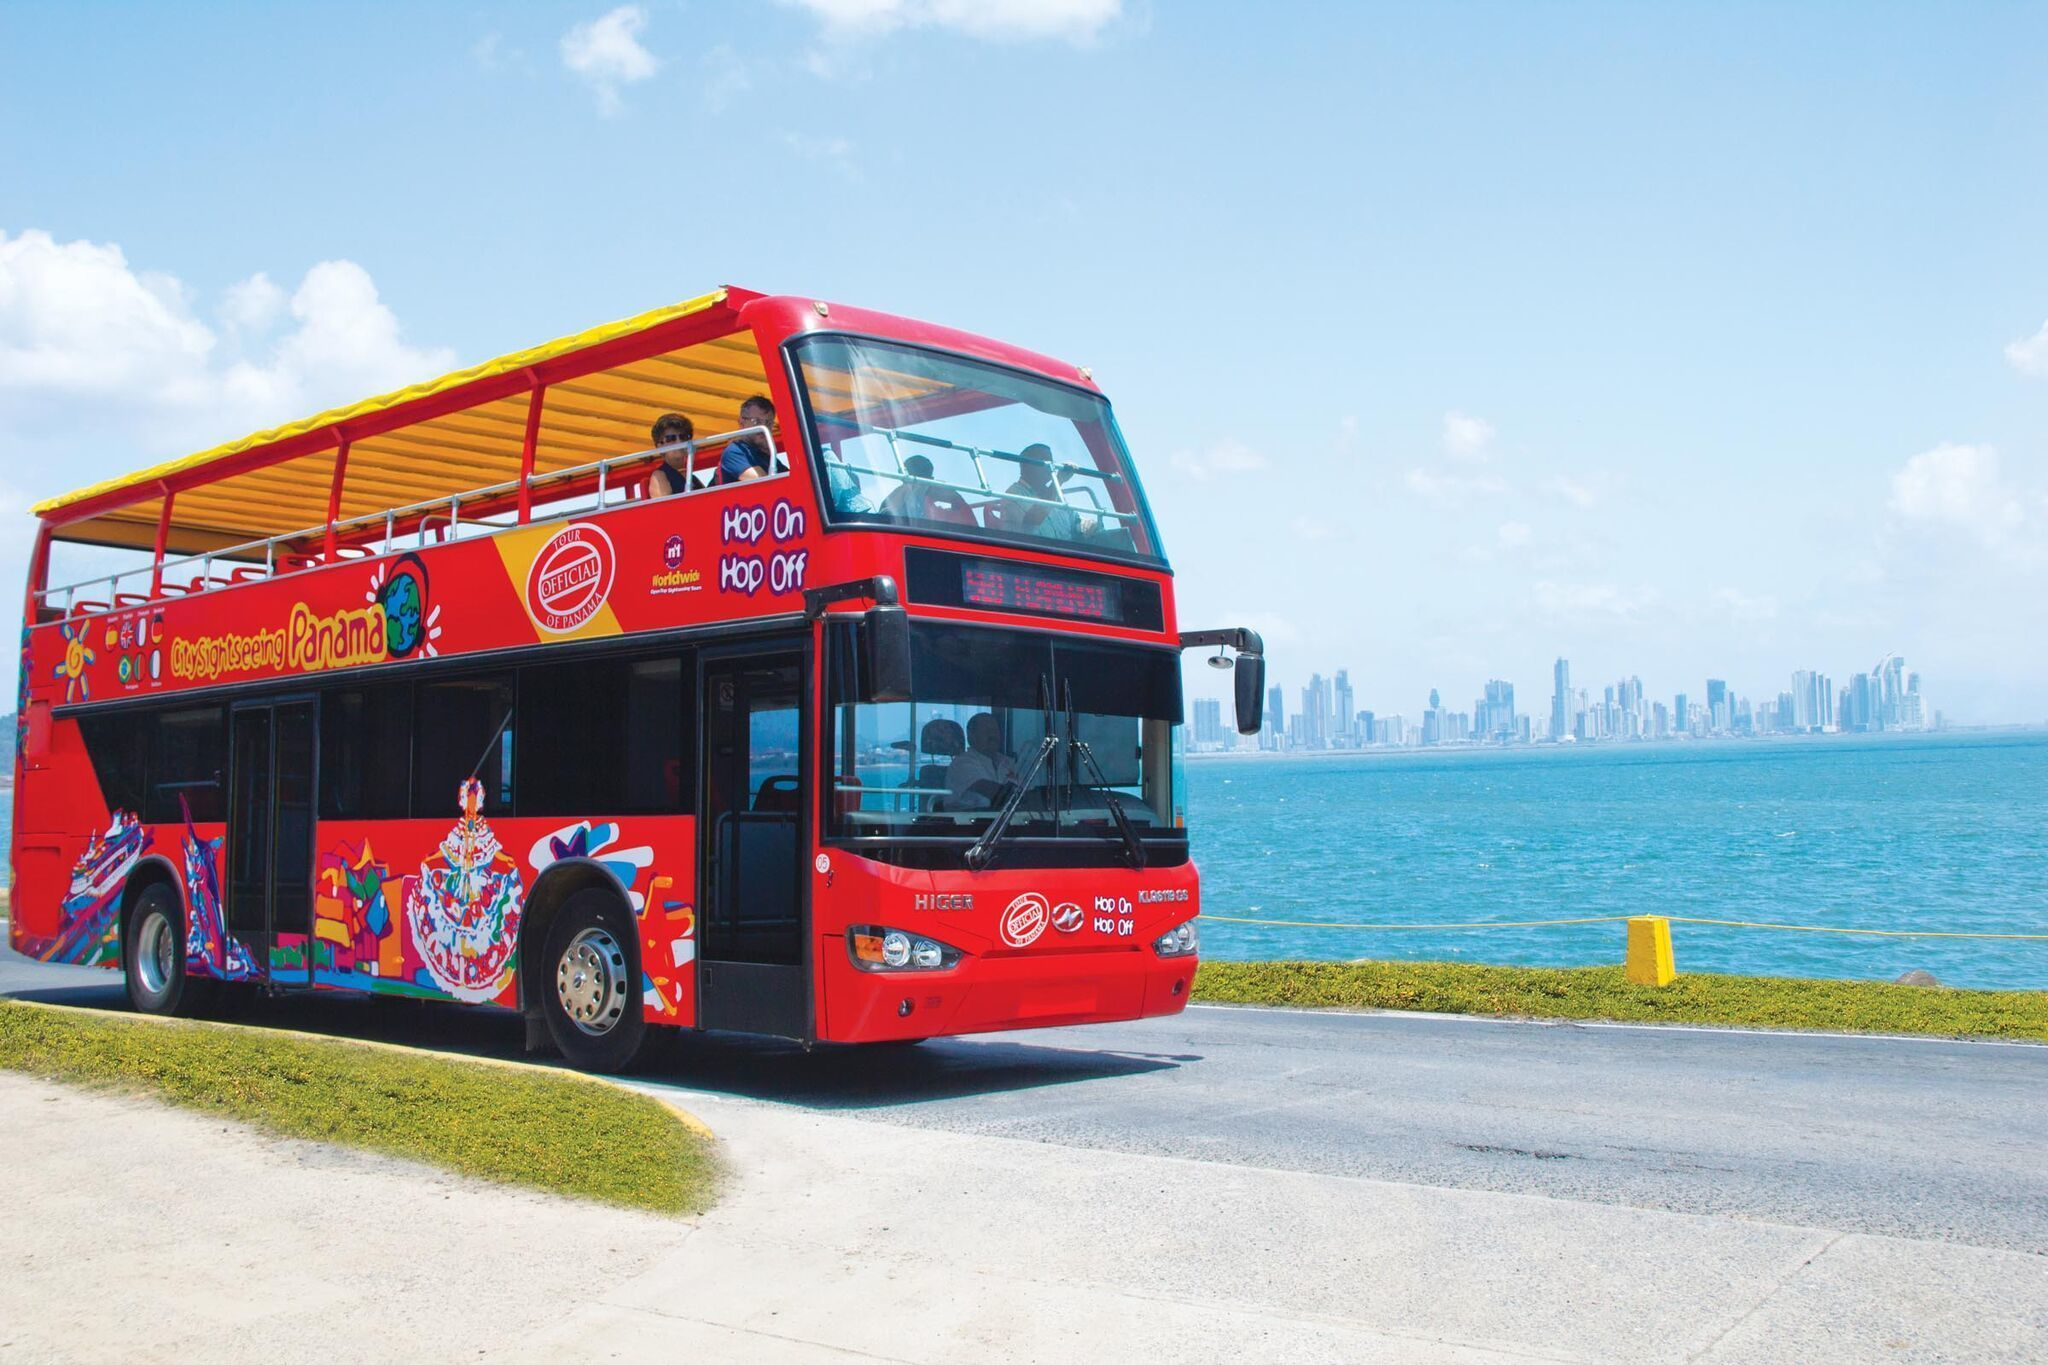 City Sightseeing Panama Hop-On Hop-Off Bus Tour